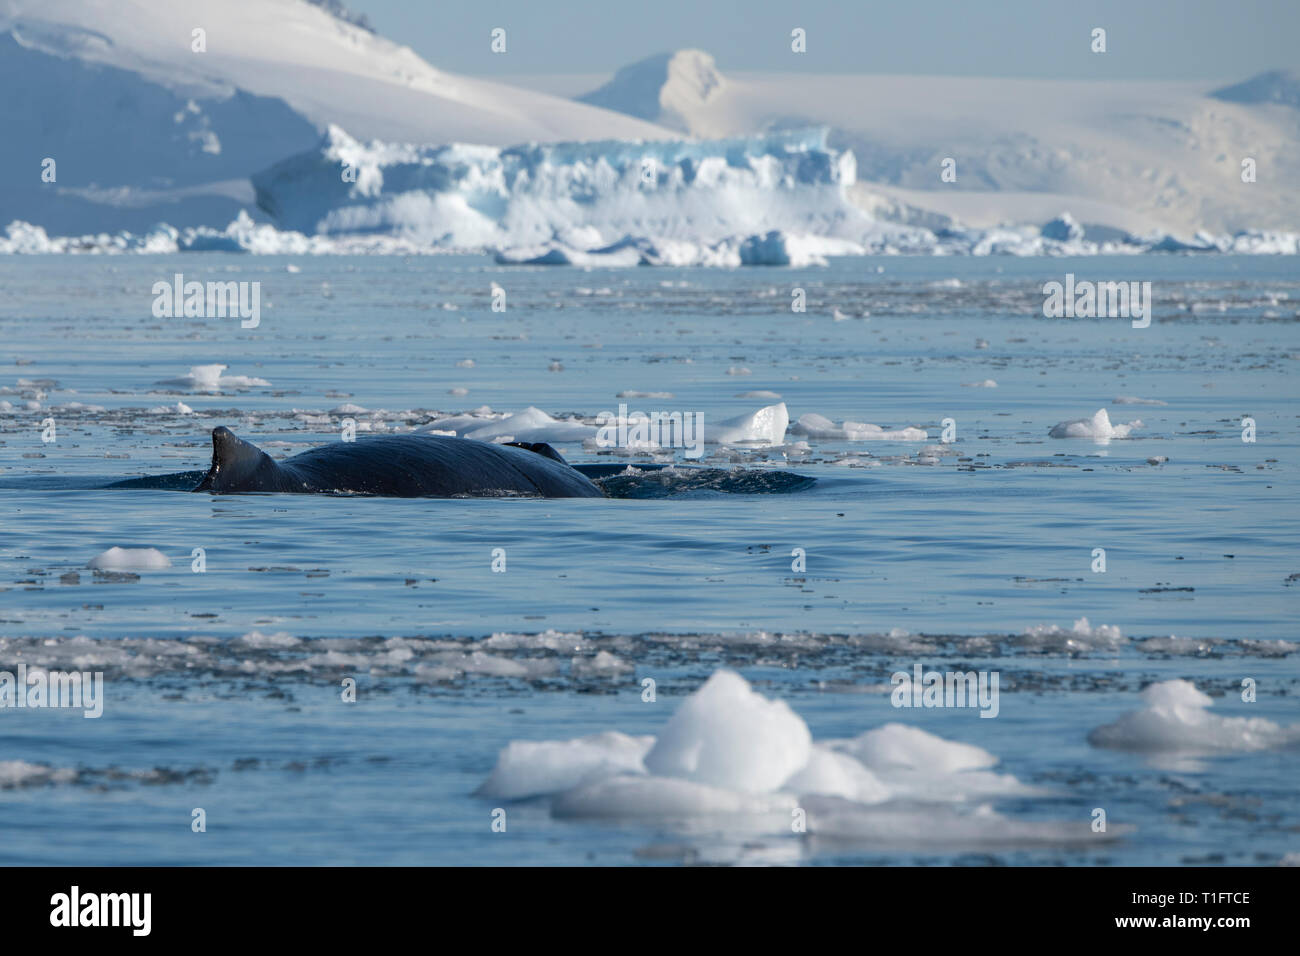 Antarctica. Cuverville Island located within the Errera Channel between Ronge Island and the Arctowski Peninsula. Humpback whale. Stock Photo